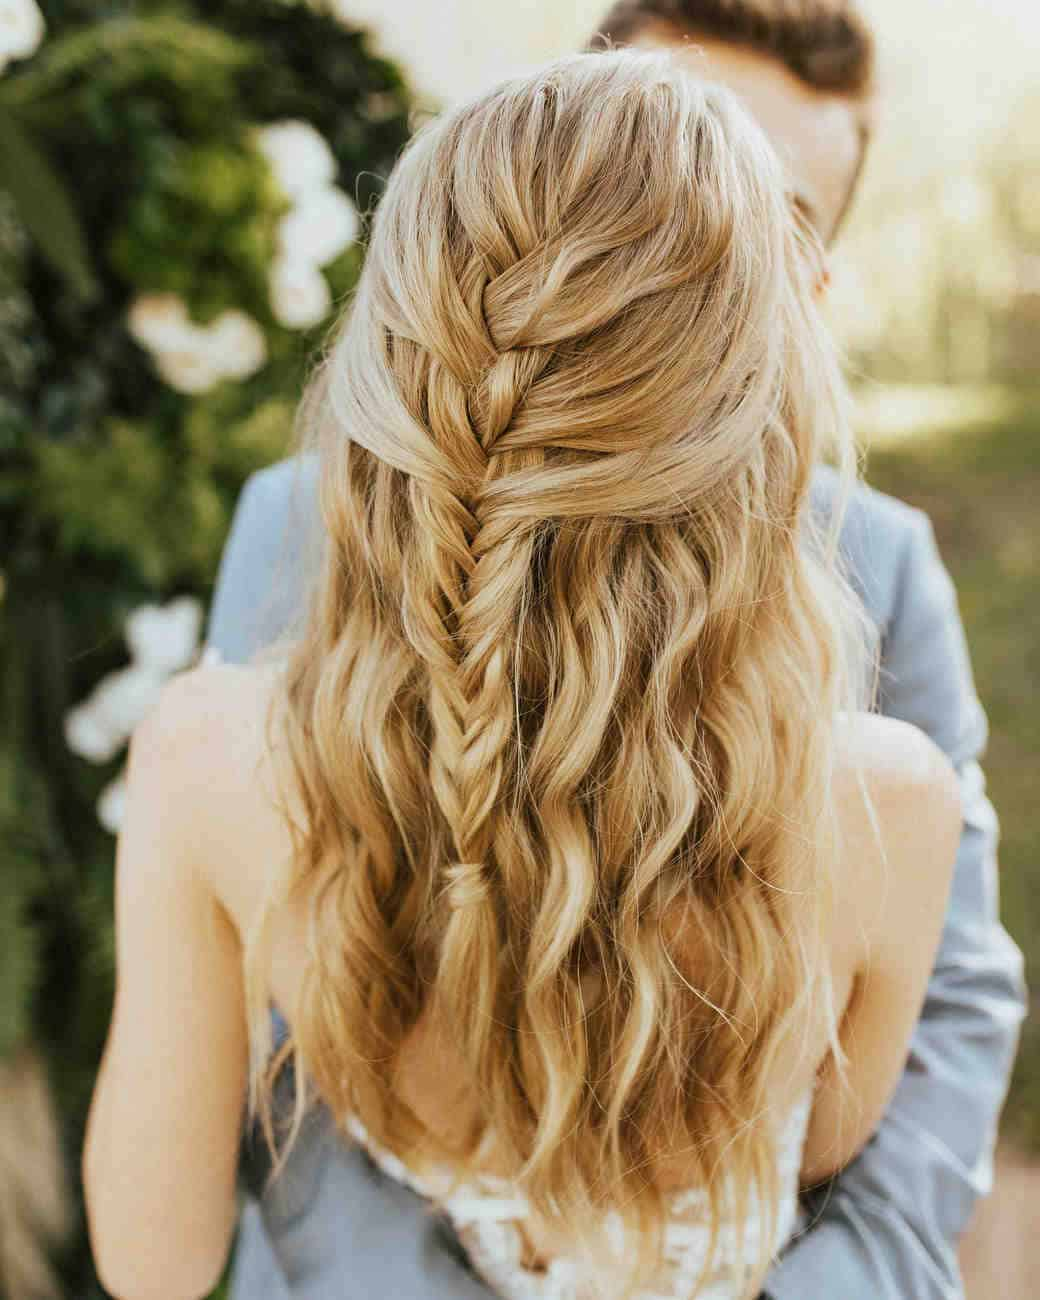 Fishtail Braid Wedding Hairstyles: 14 Wedding Hairstyles For Ladies With Long Locks